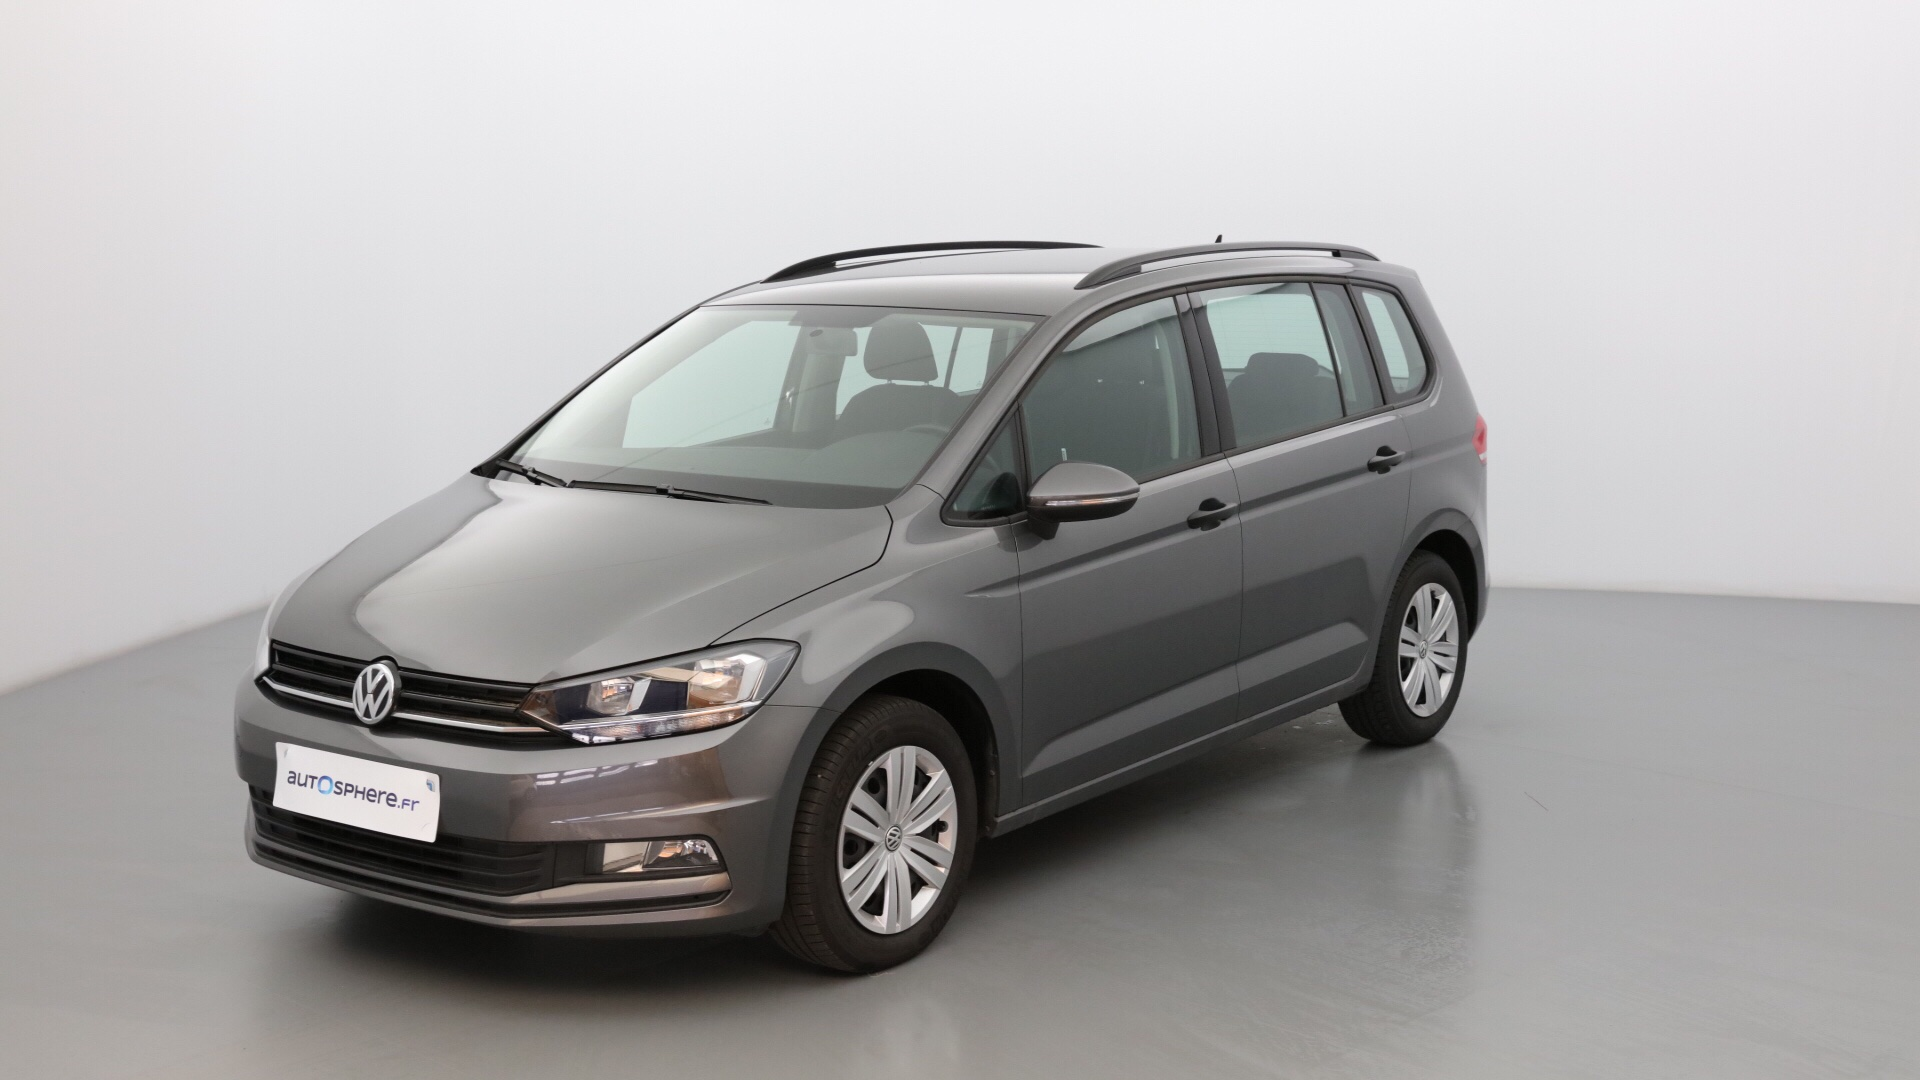 VOLKSWAGEN TOURAN 1.6 TDI 110CH BLUEMOTION TECHNOLOGY FAP TRENDLINE BUSINESS 5 PLACES - Photo 1